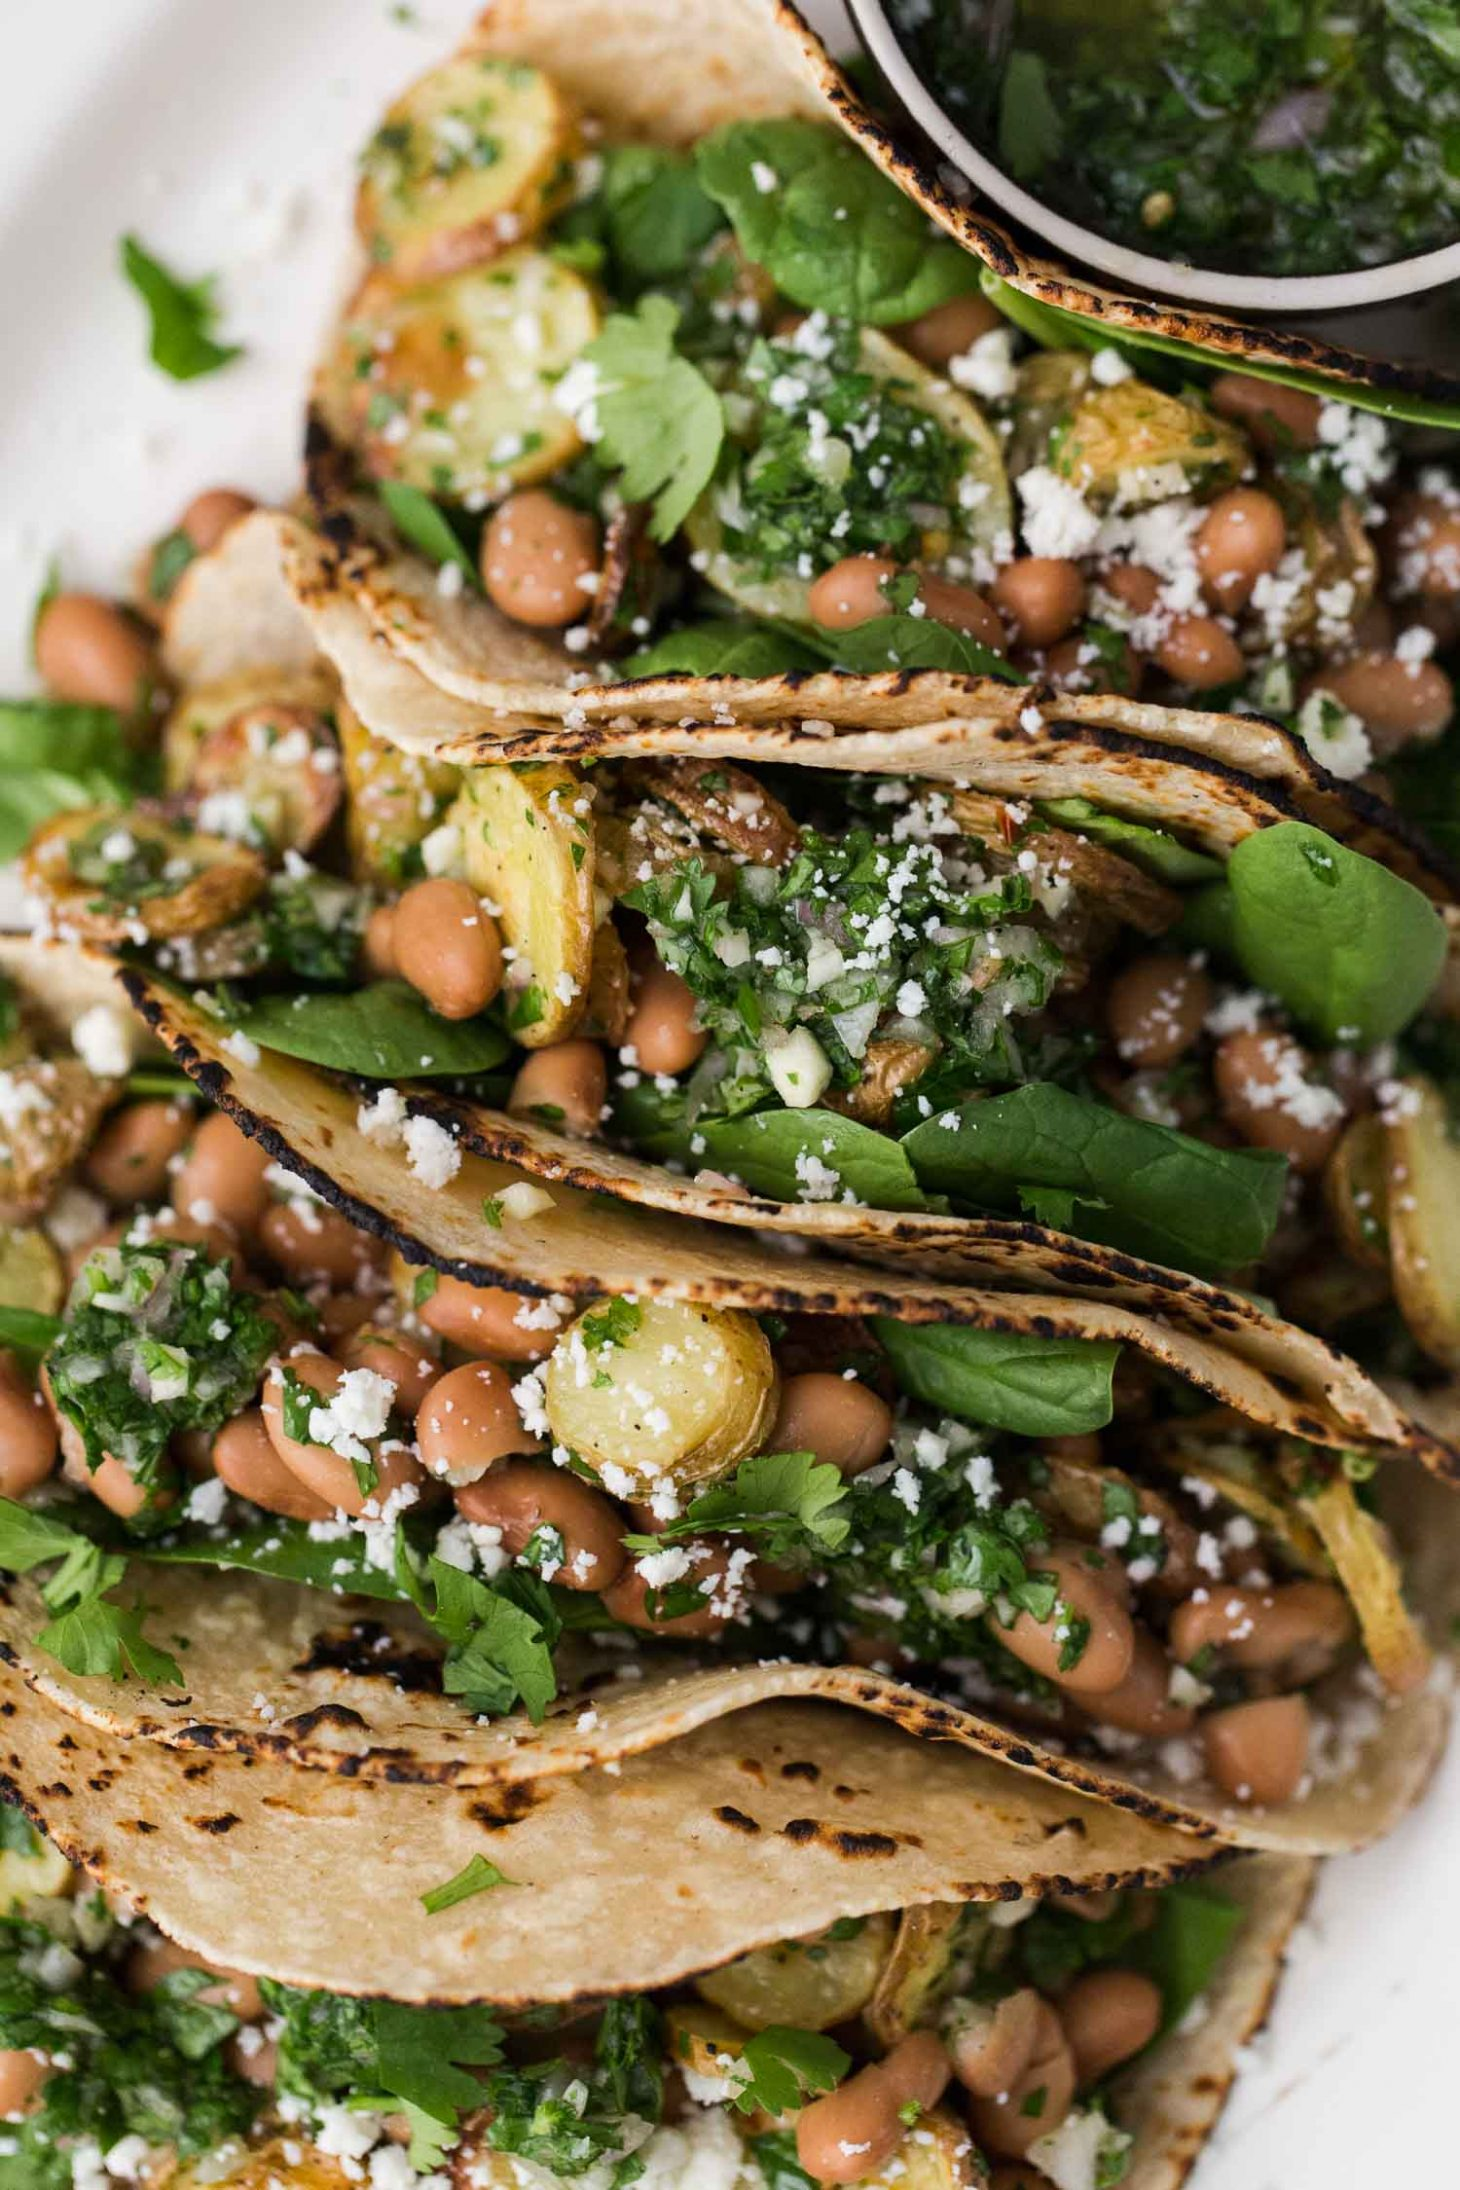 Chimichurri Potato Tacos with Pinto Beans | @naturallyella